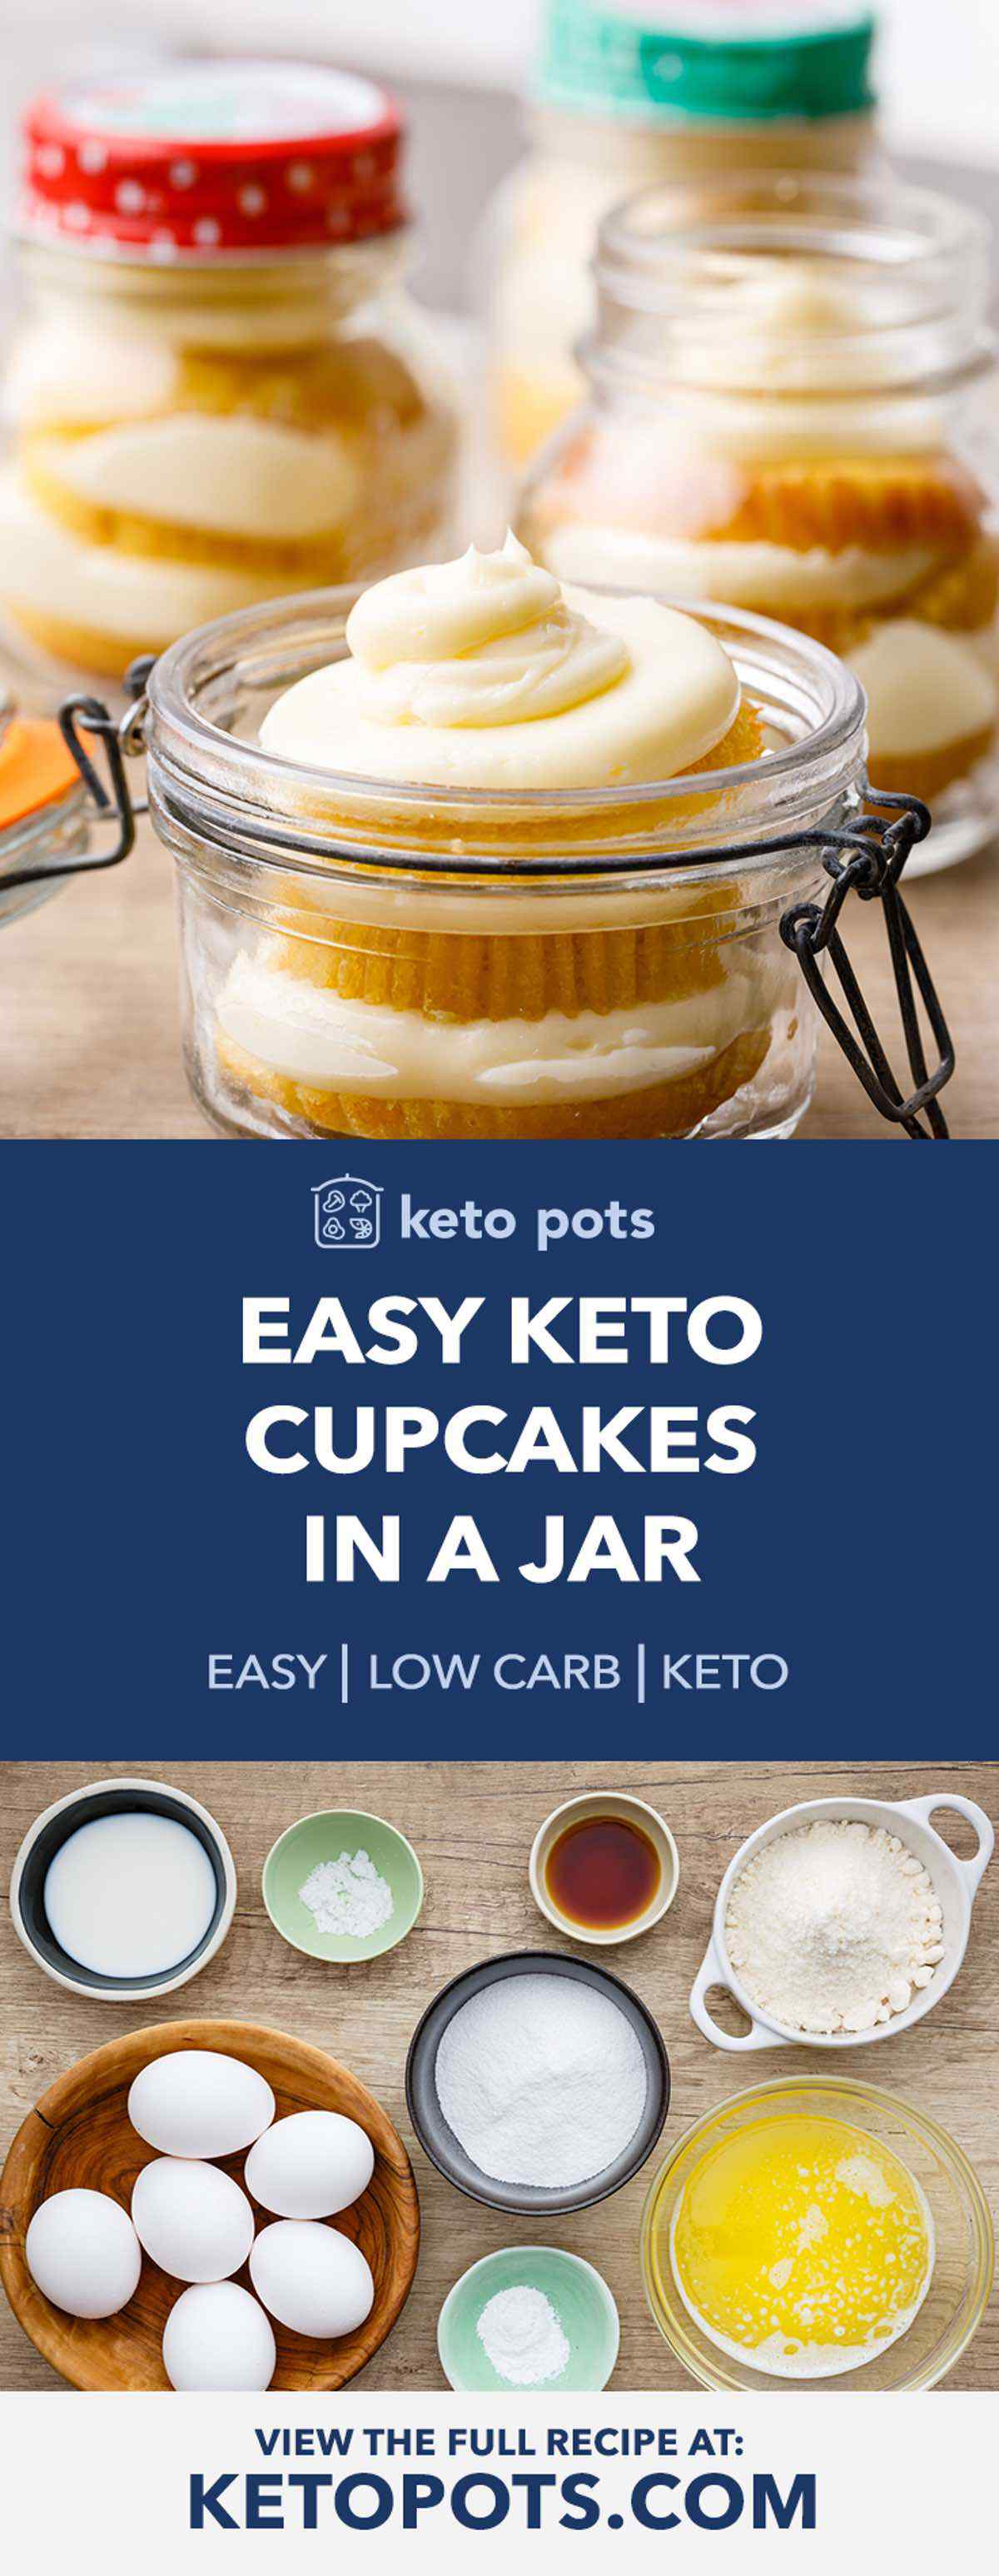 Keto Vanilla Cupcakes in a Jar with Buttercream Frosting